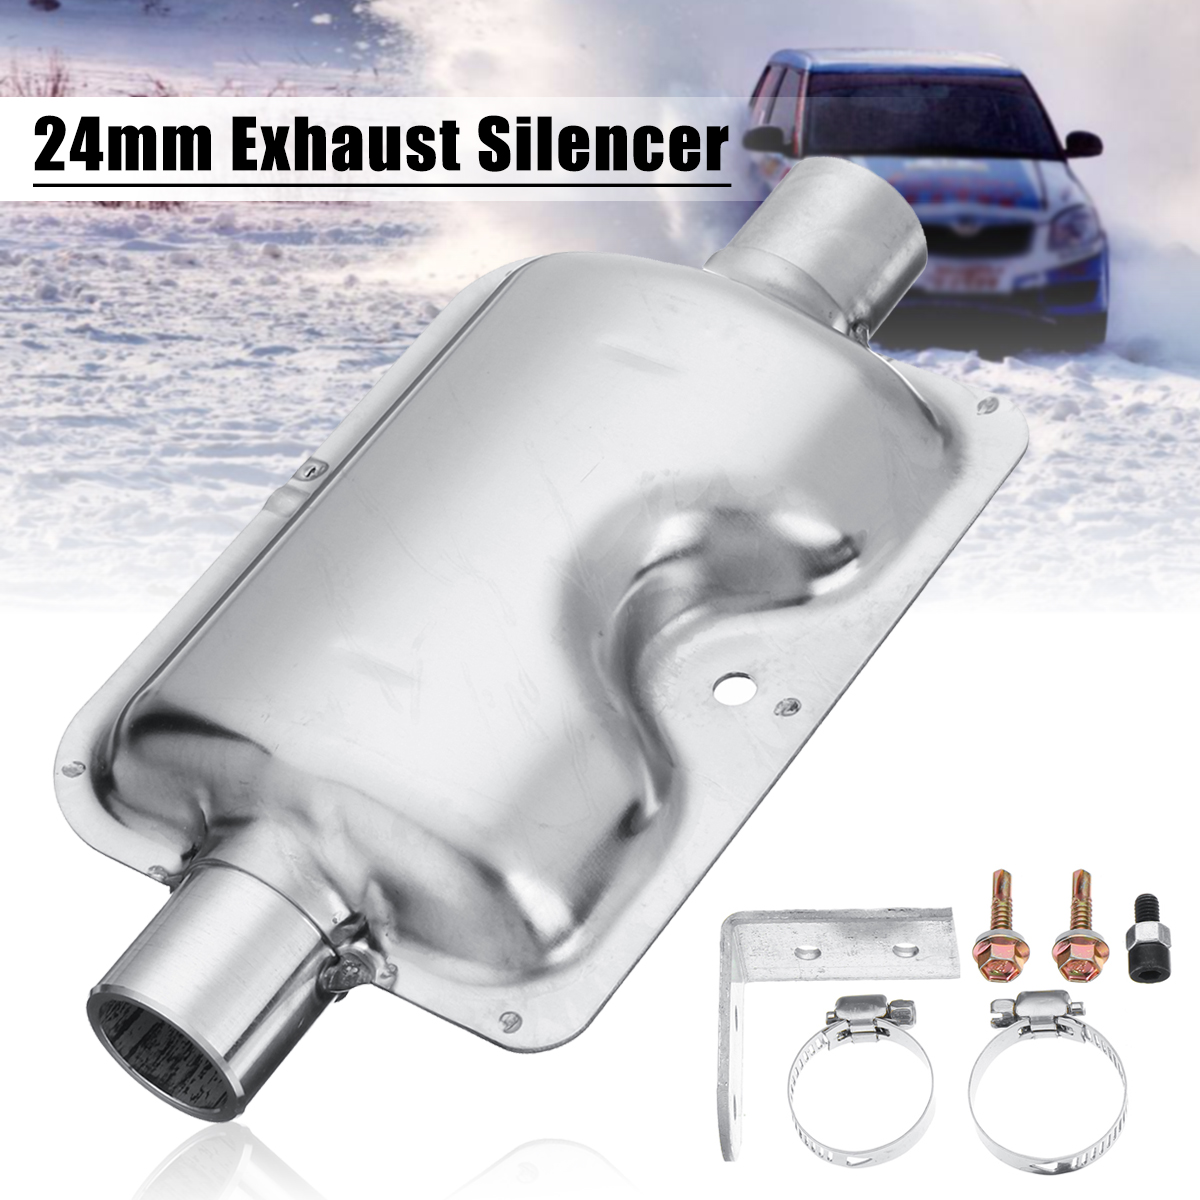 24mm/0.9inch Car Truck Portable Pipe Silencer Exhaust Muffler Clamps Bracket for Webasto  Ebespacher Diesel Heater24mm/0.9inch Car Truck Portable Pipe Silencer Exhaust Muffler Clamps Bracket for Webasto  Ebespacher Diesel Heater